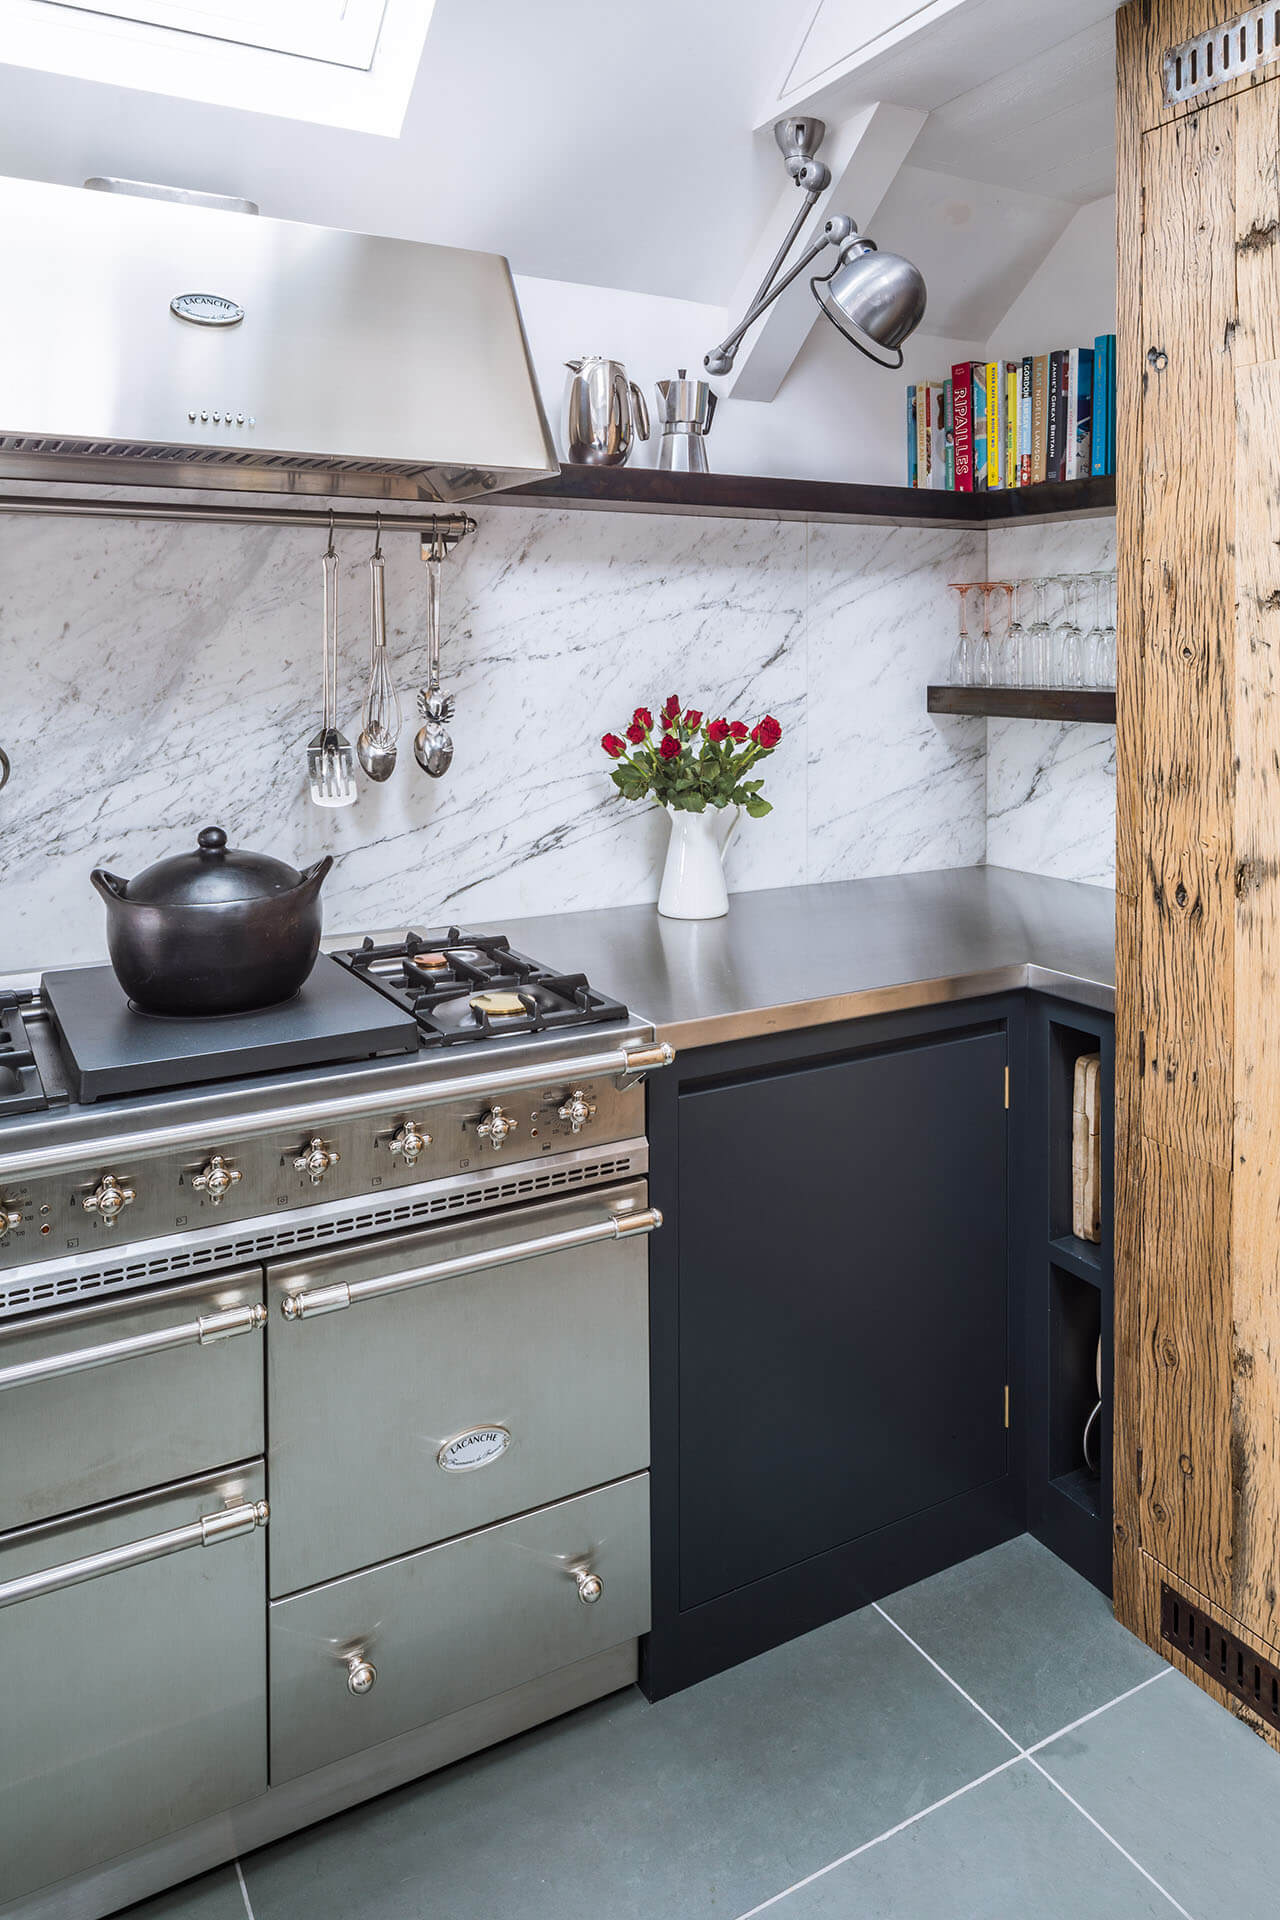 Steel, Marble, Reclaimed Wood Kitchen with Lacanche rangle, stainless stell worktop and antiqued copper floating shelves